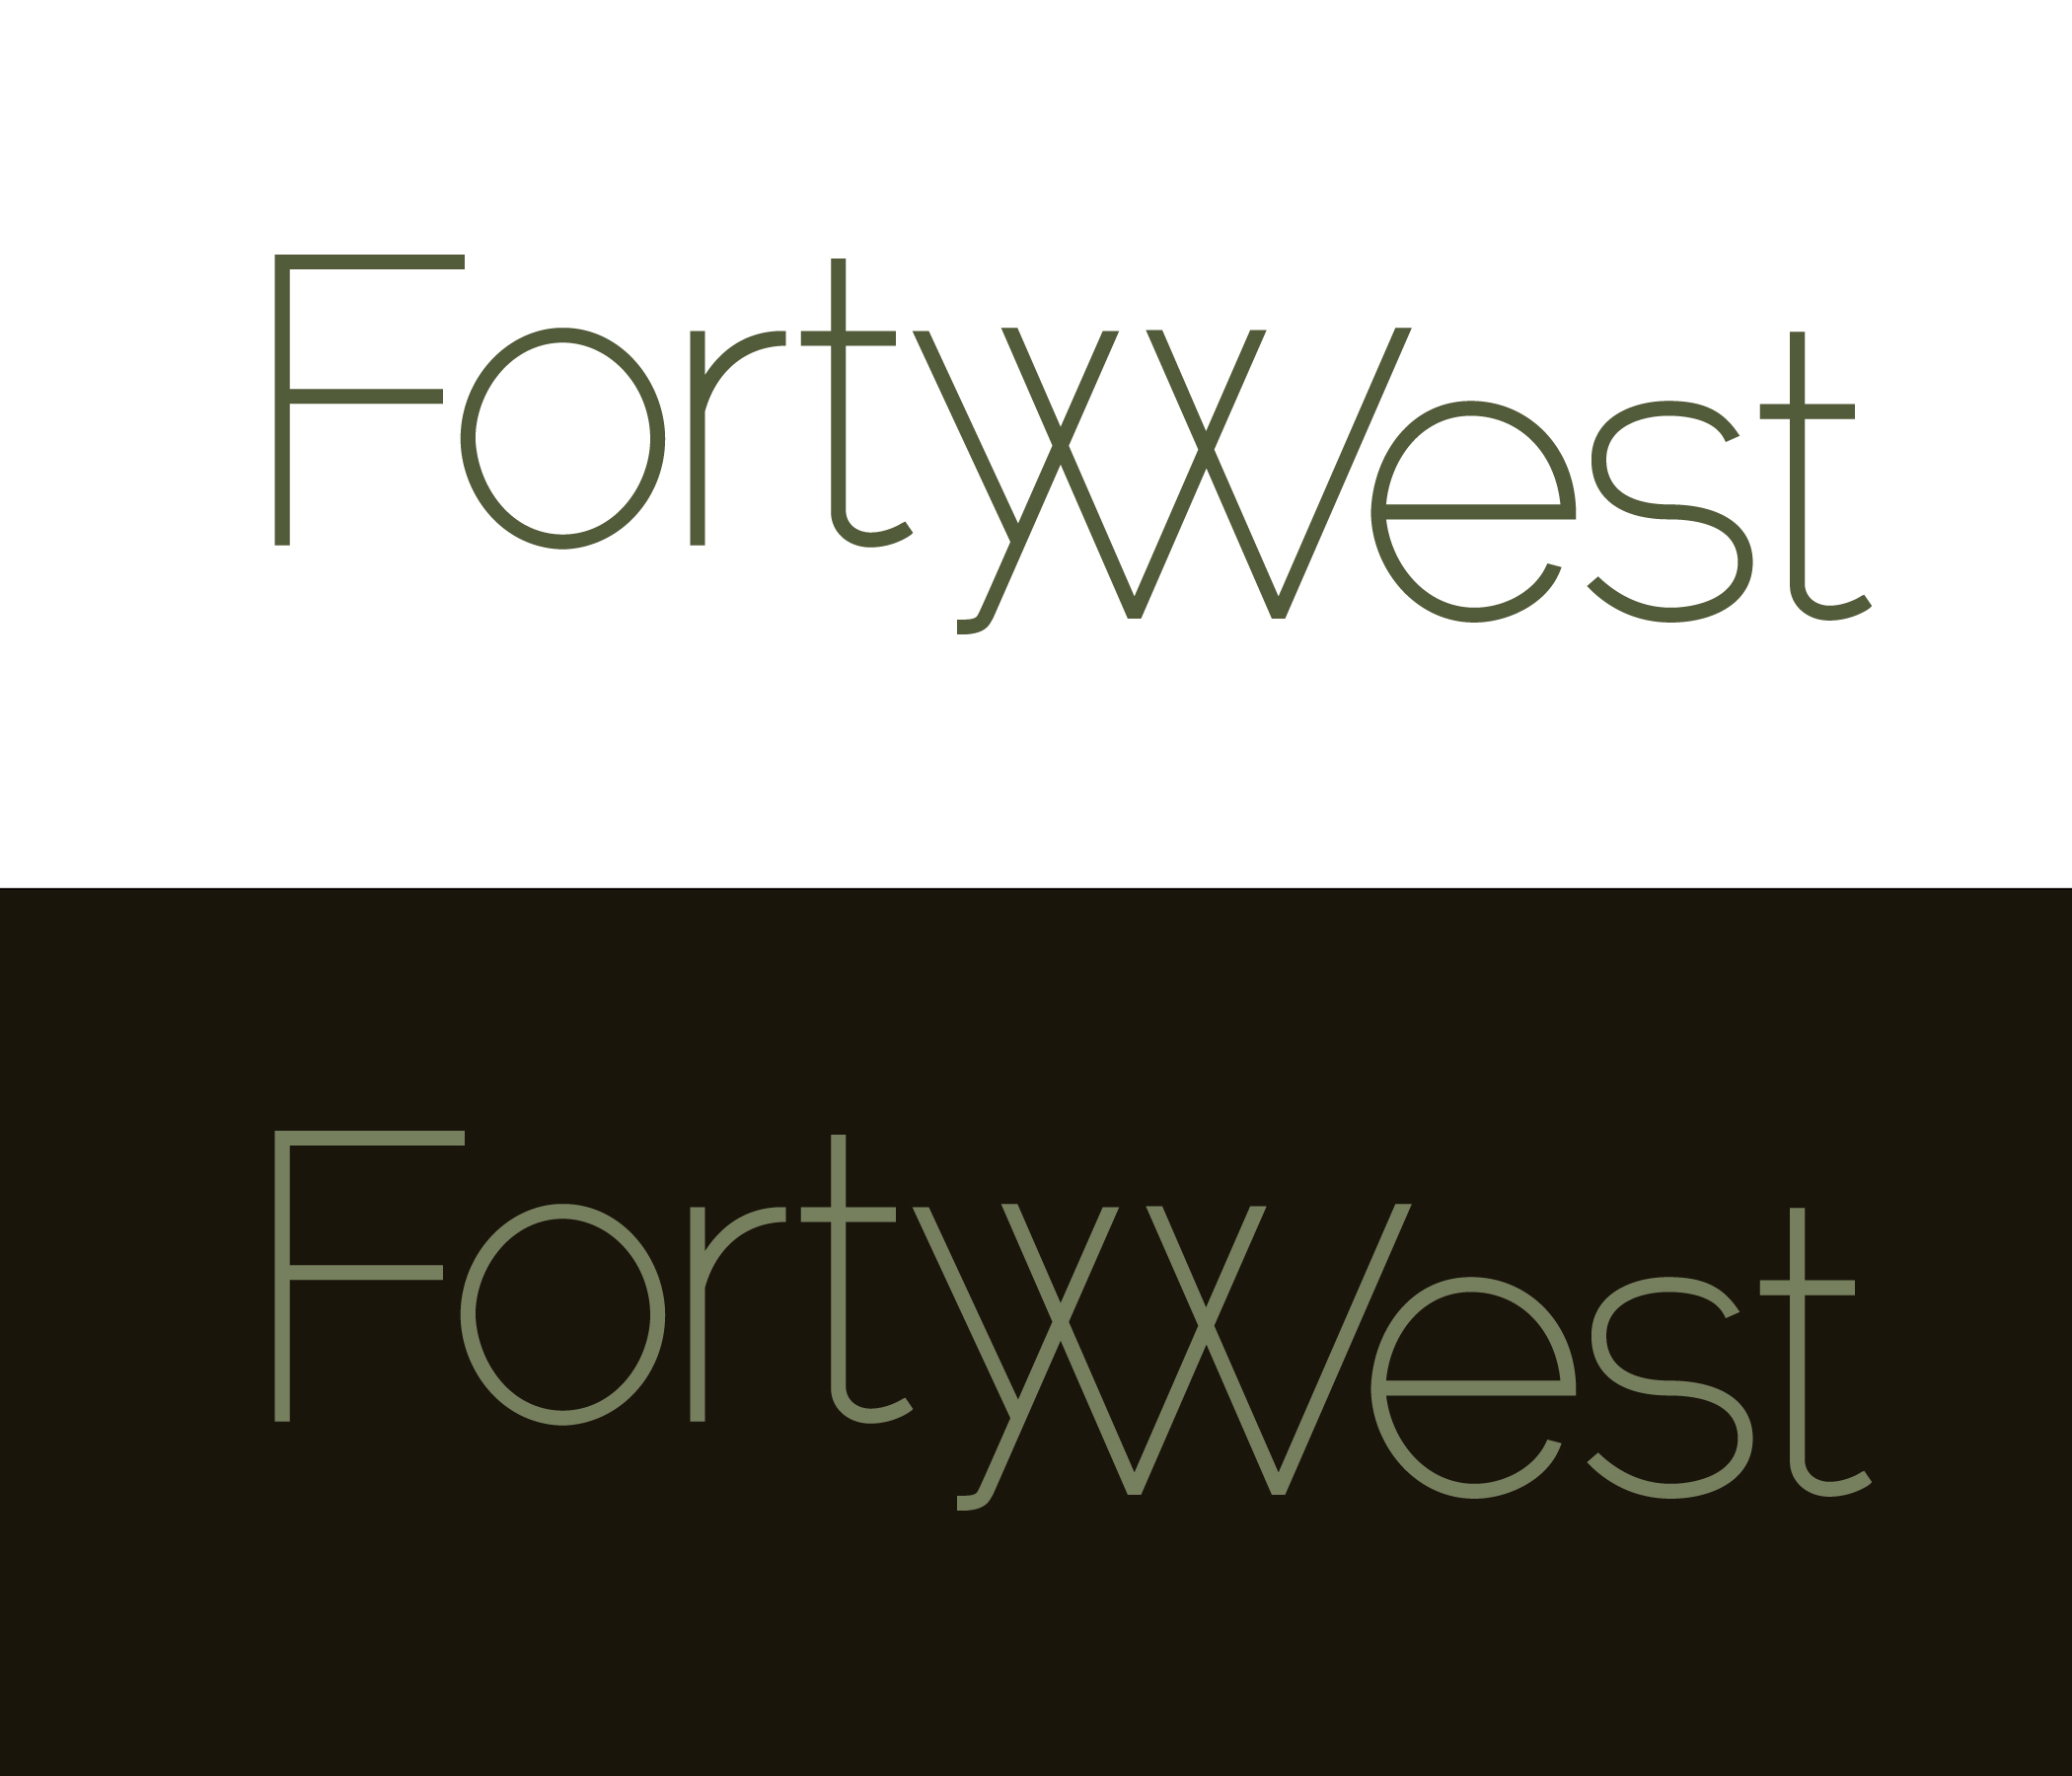 Logo Design by moidgreat - Entry No. 168 in the Logo Design Contest Unique Logo Design Wanted for Forty West.